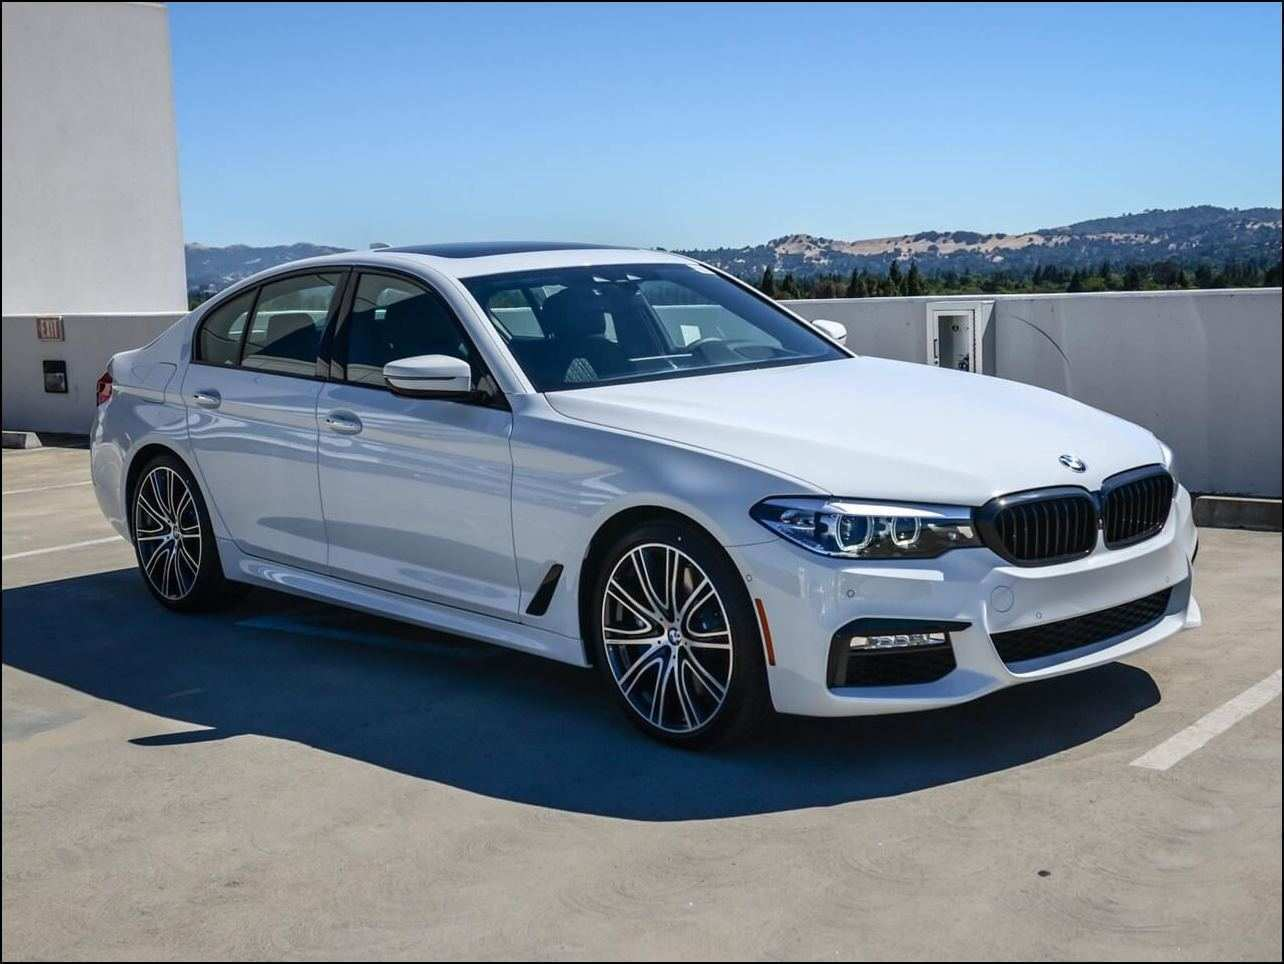 65 Best 2020 BMW 5 Series Review And Release Date